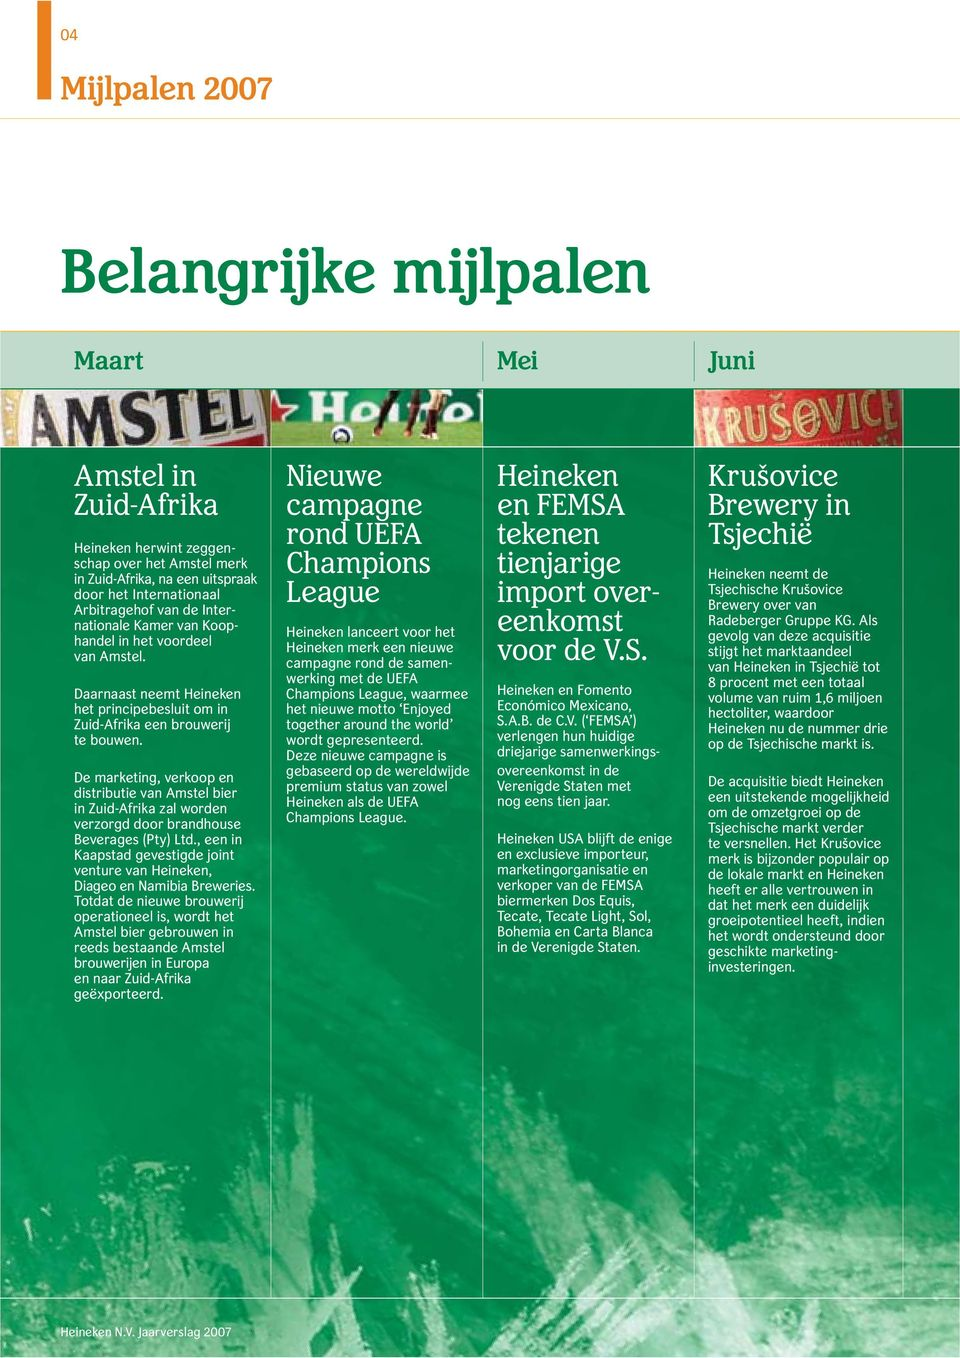 De marketing, verkoop en distributie van Amstel bier in Zuid-Afrika zal worden verzorgd door brandhouse Beverages (Pty) Ltd.